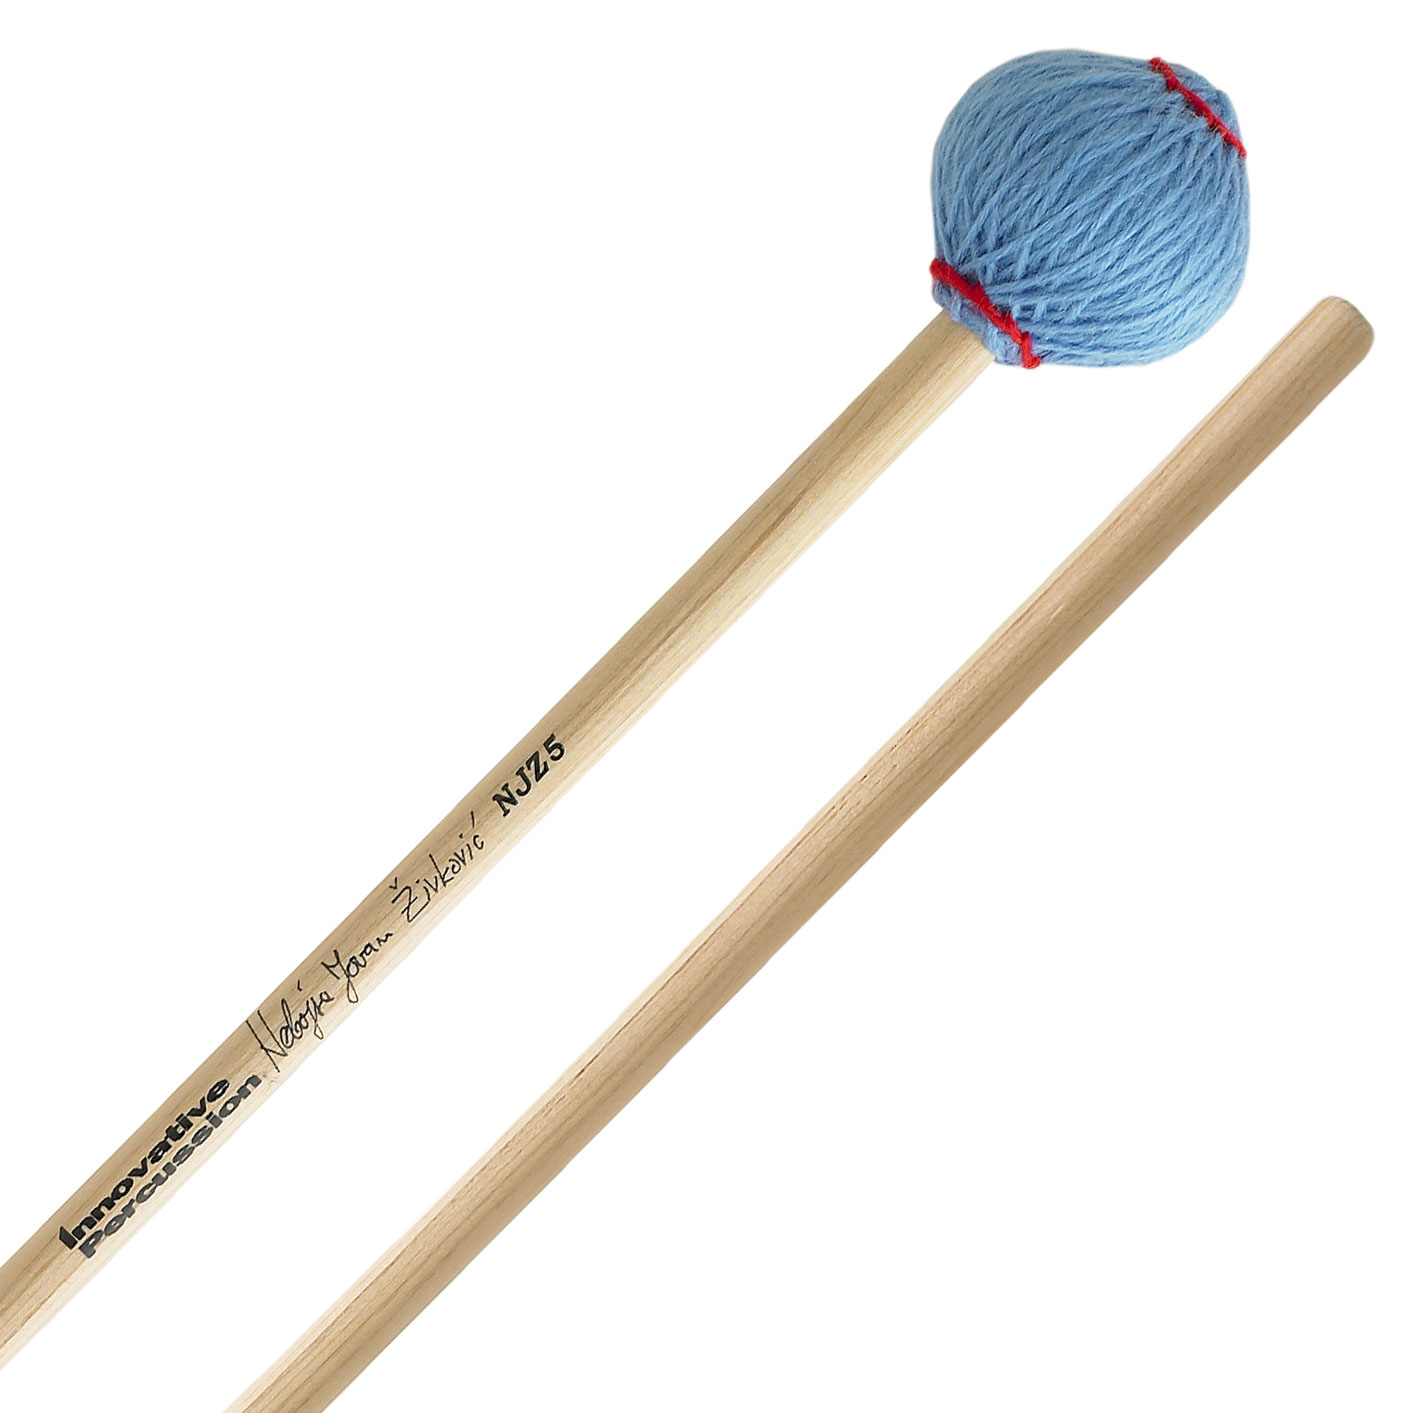 Innovative Percussion Nebojsa Zivkovic General Signature Hard Marimba Mallets with Cedar Shafts